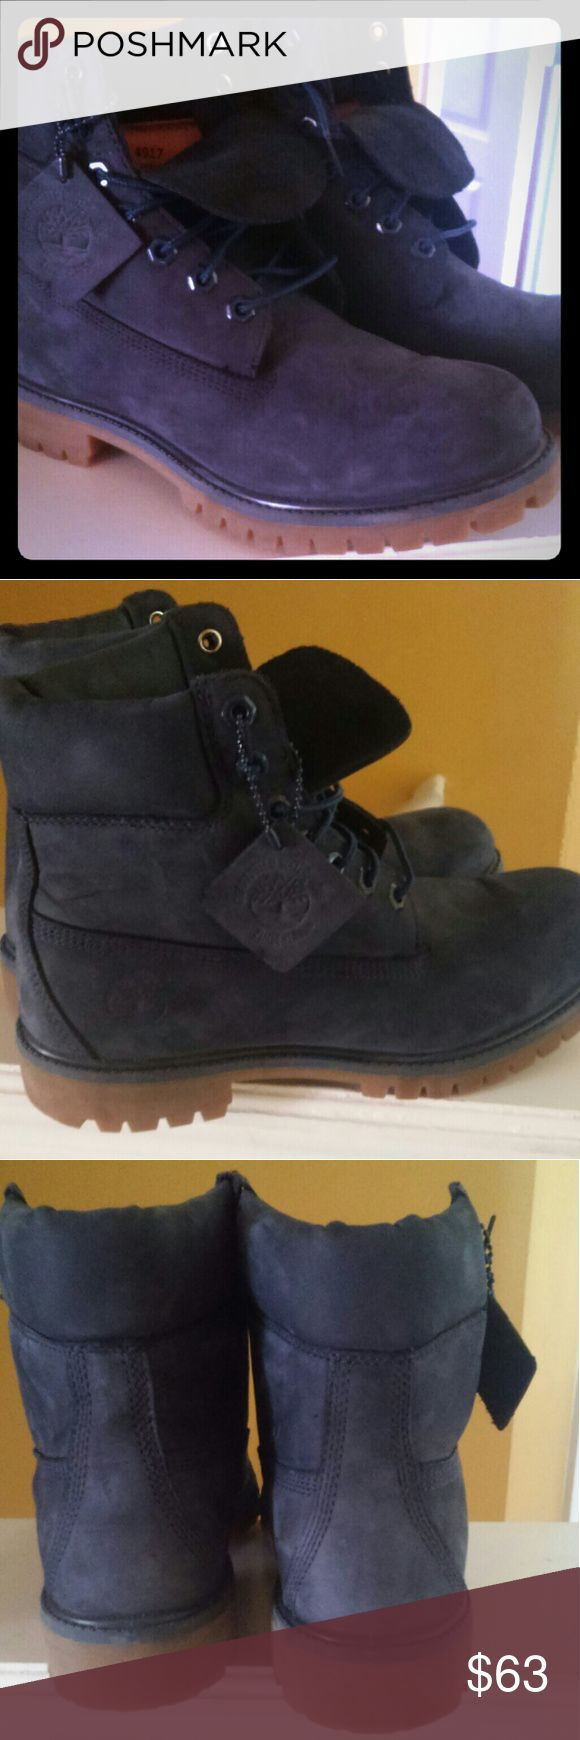 Timberland boots Navy blue size 8 good condition Timberland Shoes Boots